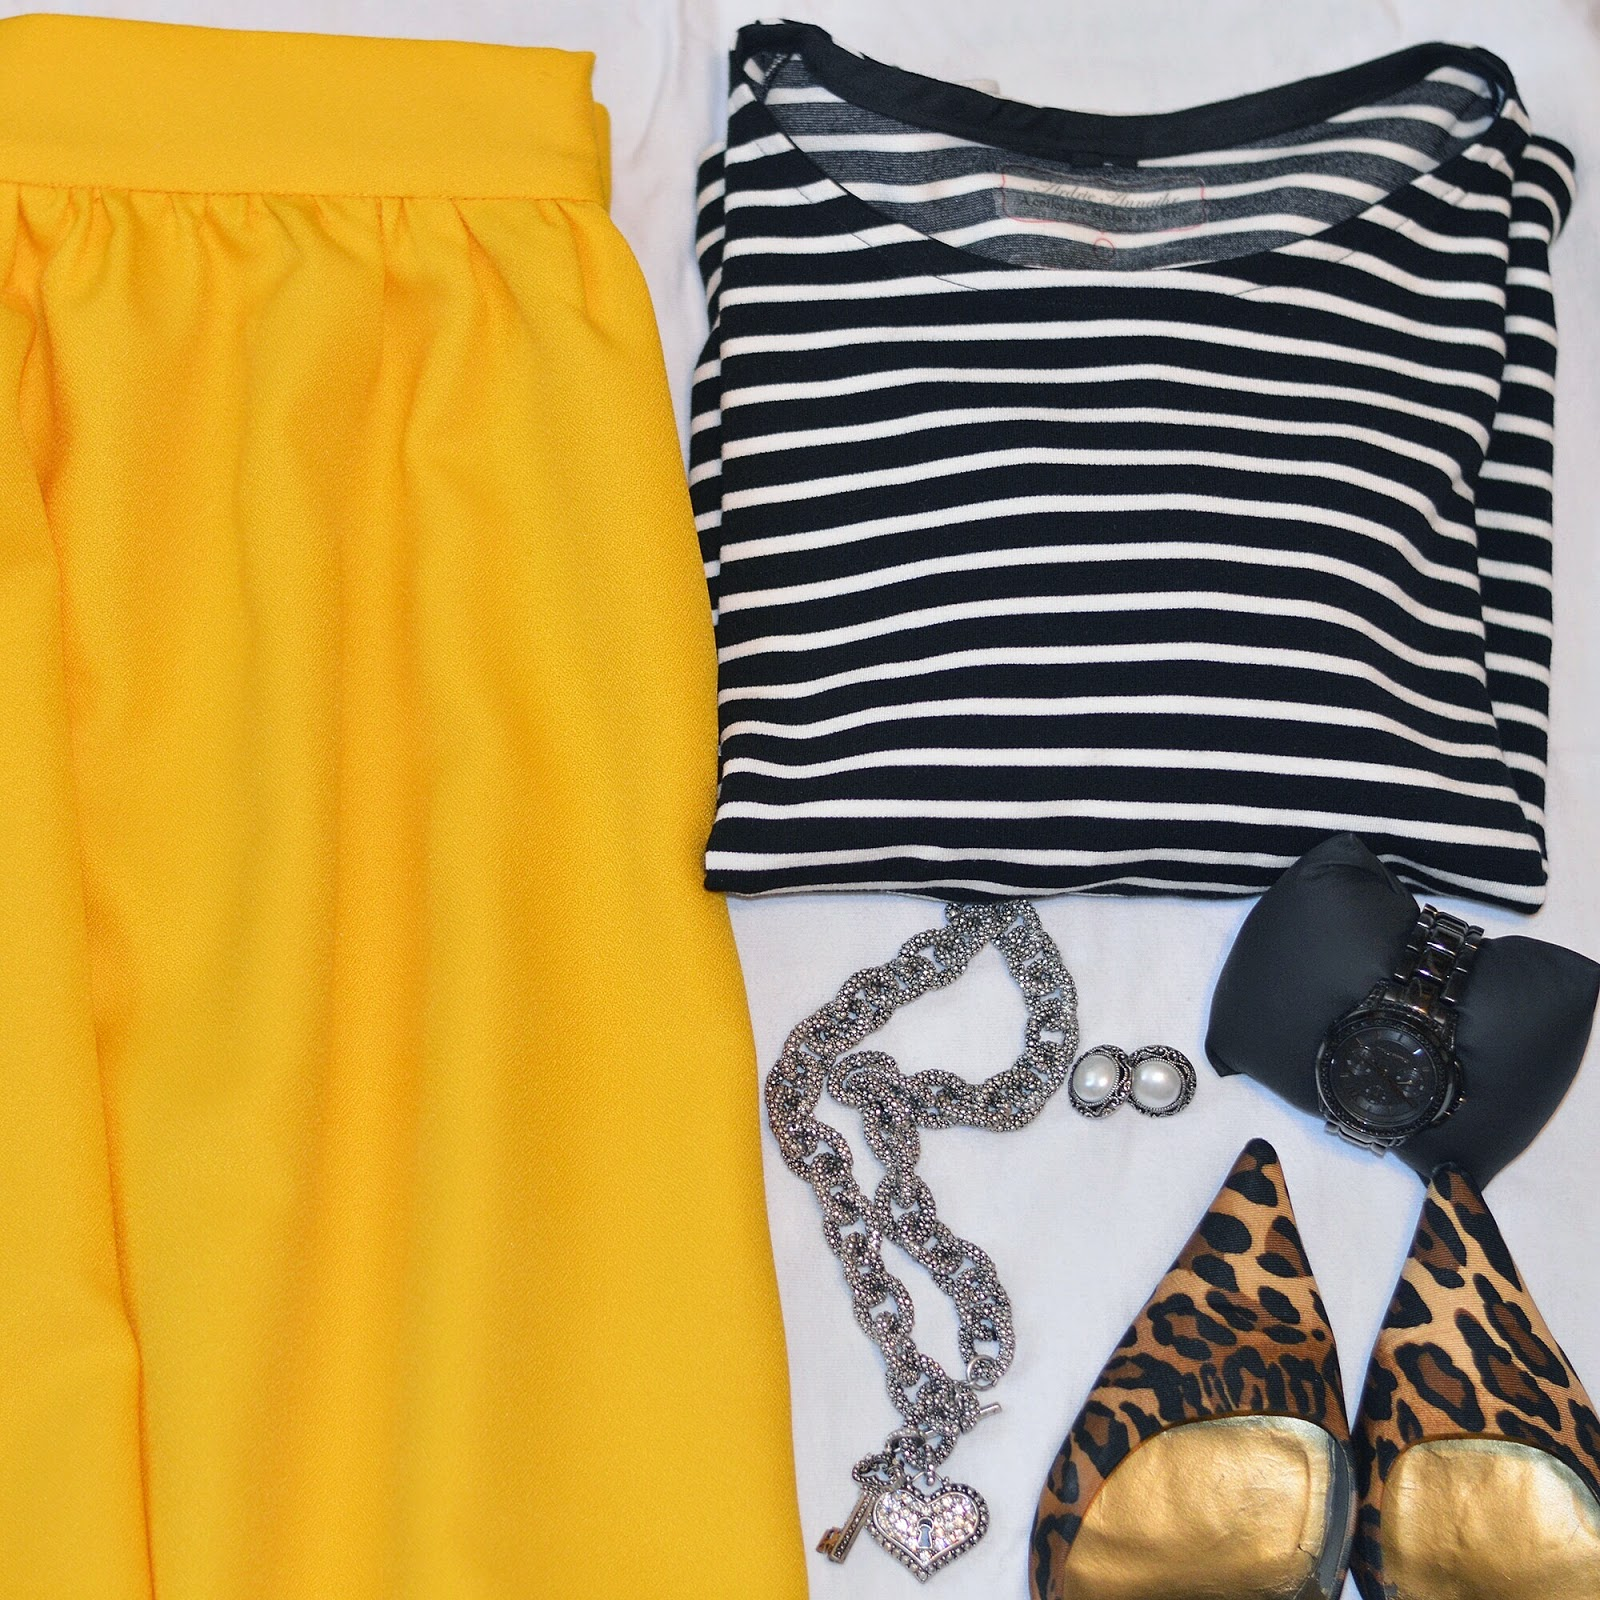 Rhianna's Studio styling a DIY top and Yellow skirt leopard print DIY